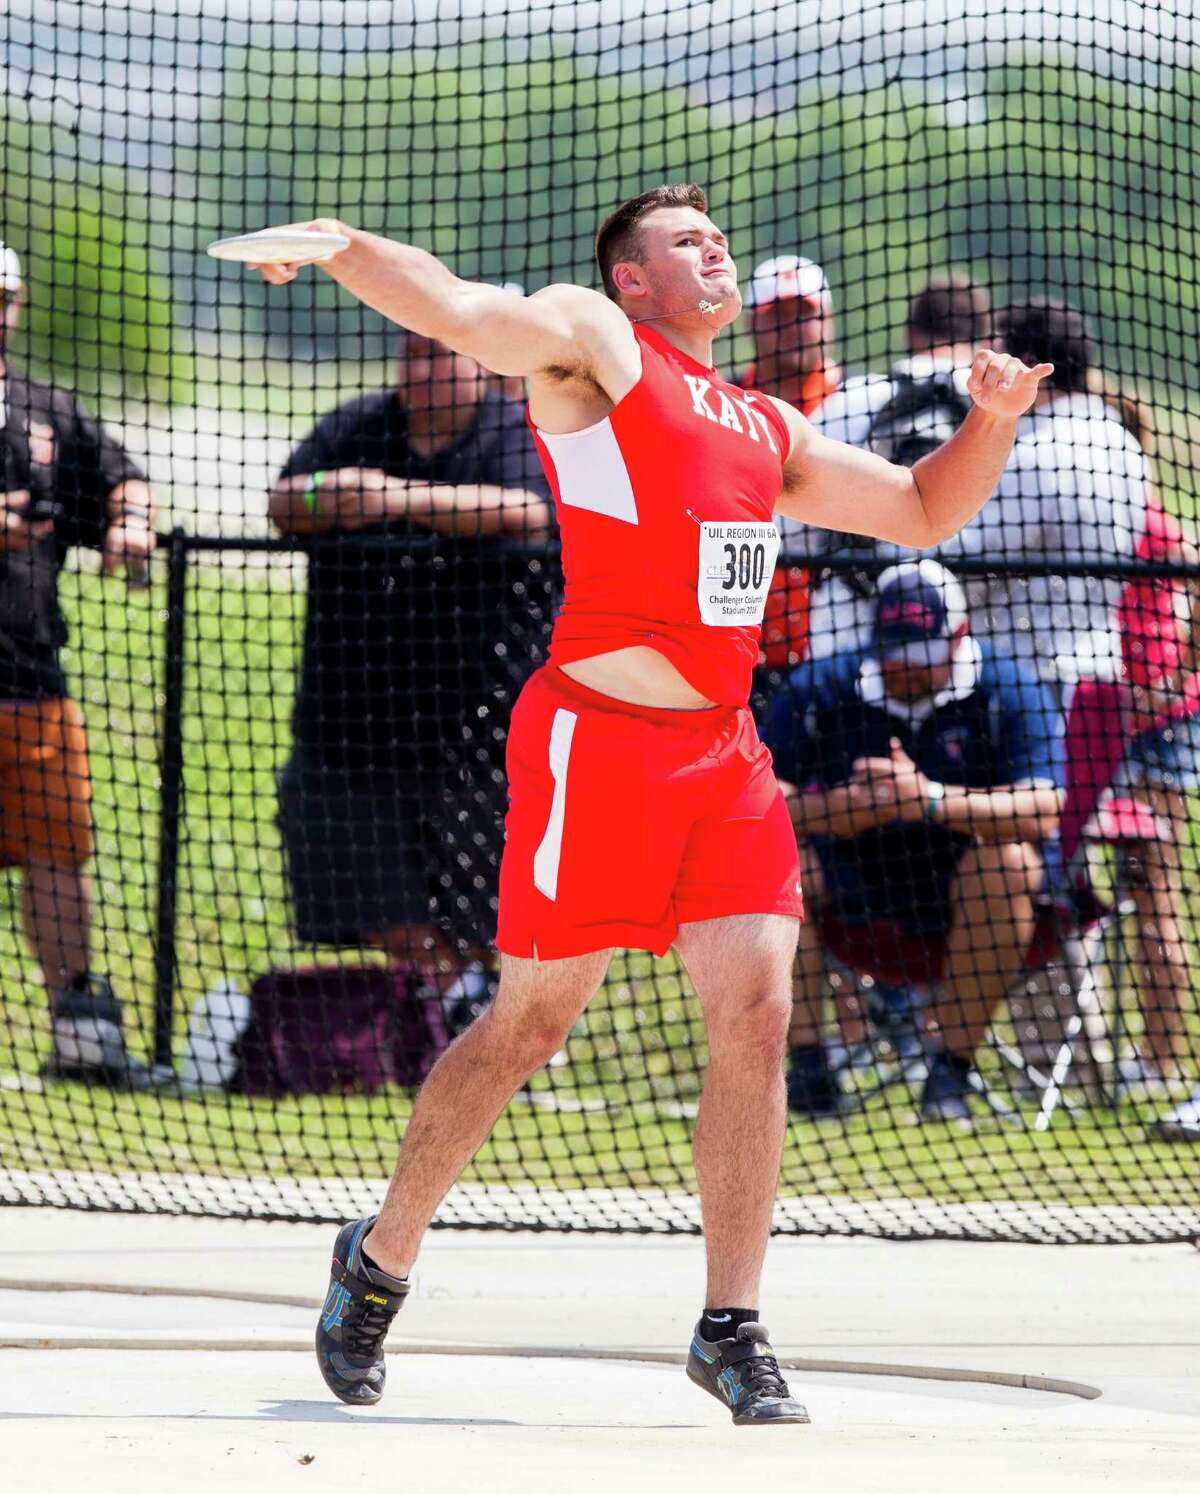 Michael Matius of Katy High School throwing the discus during the boys discus competition during UIL Region II 6-A Track & Field Championship at the Challenger Columbia Stadium, Friday, Apr. 29, 2016, in Houston. (Juan DeLeon / For the Houston Chronicle)